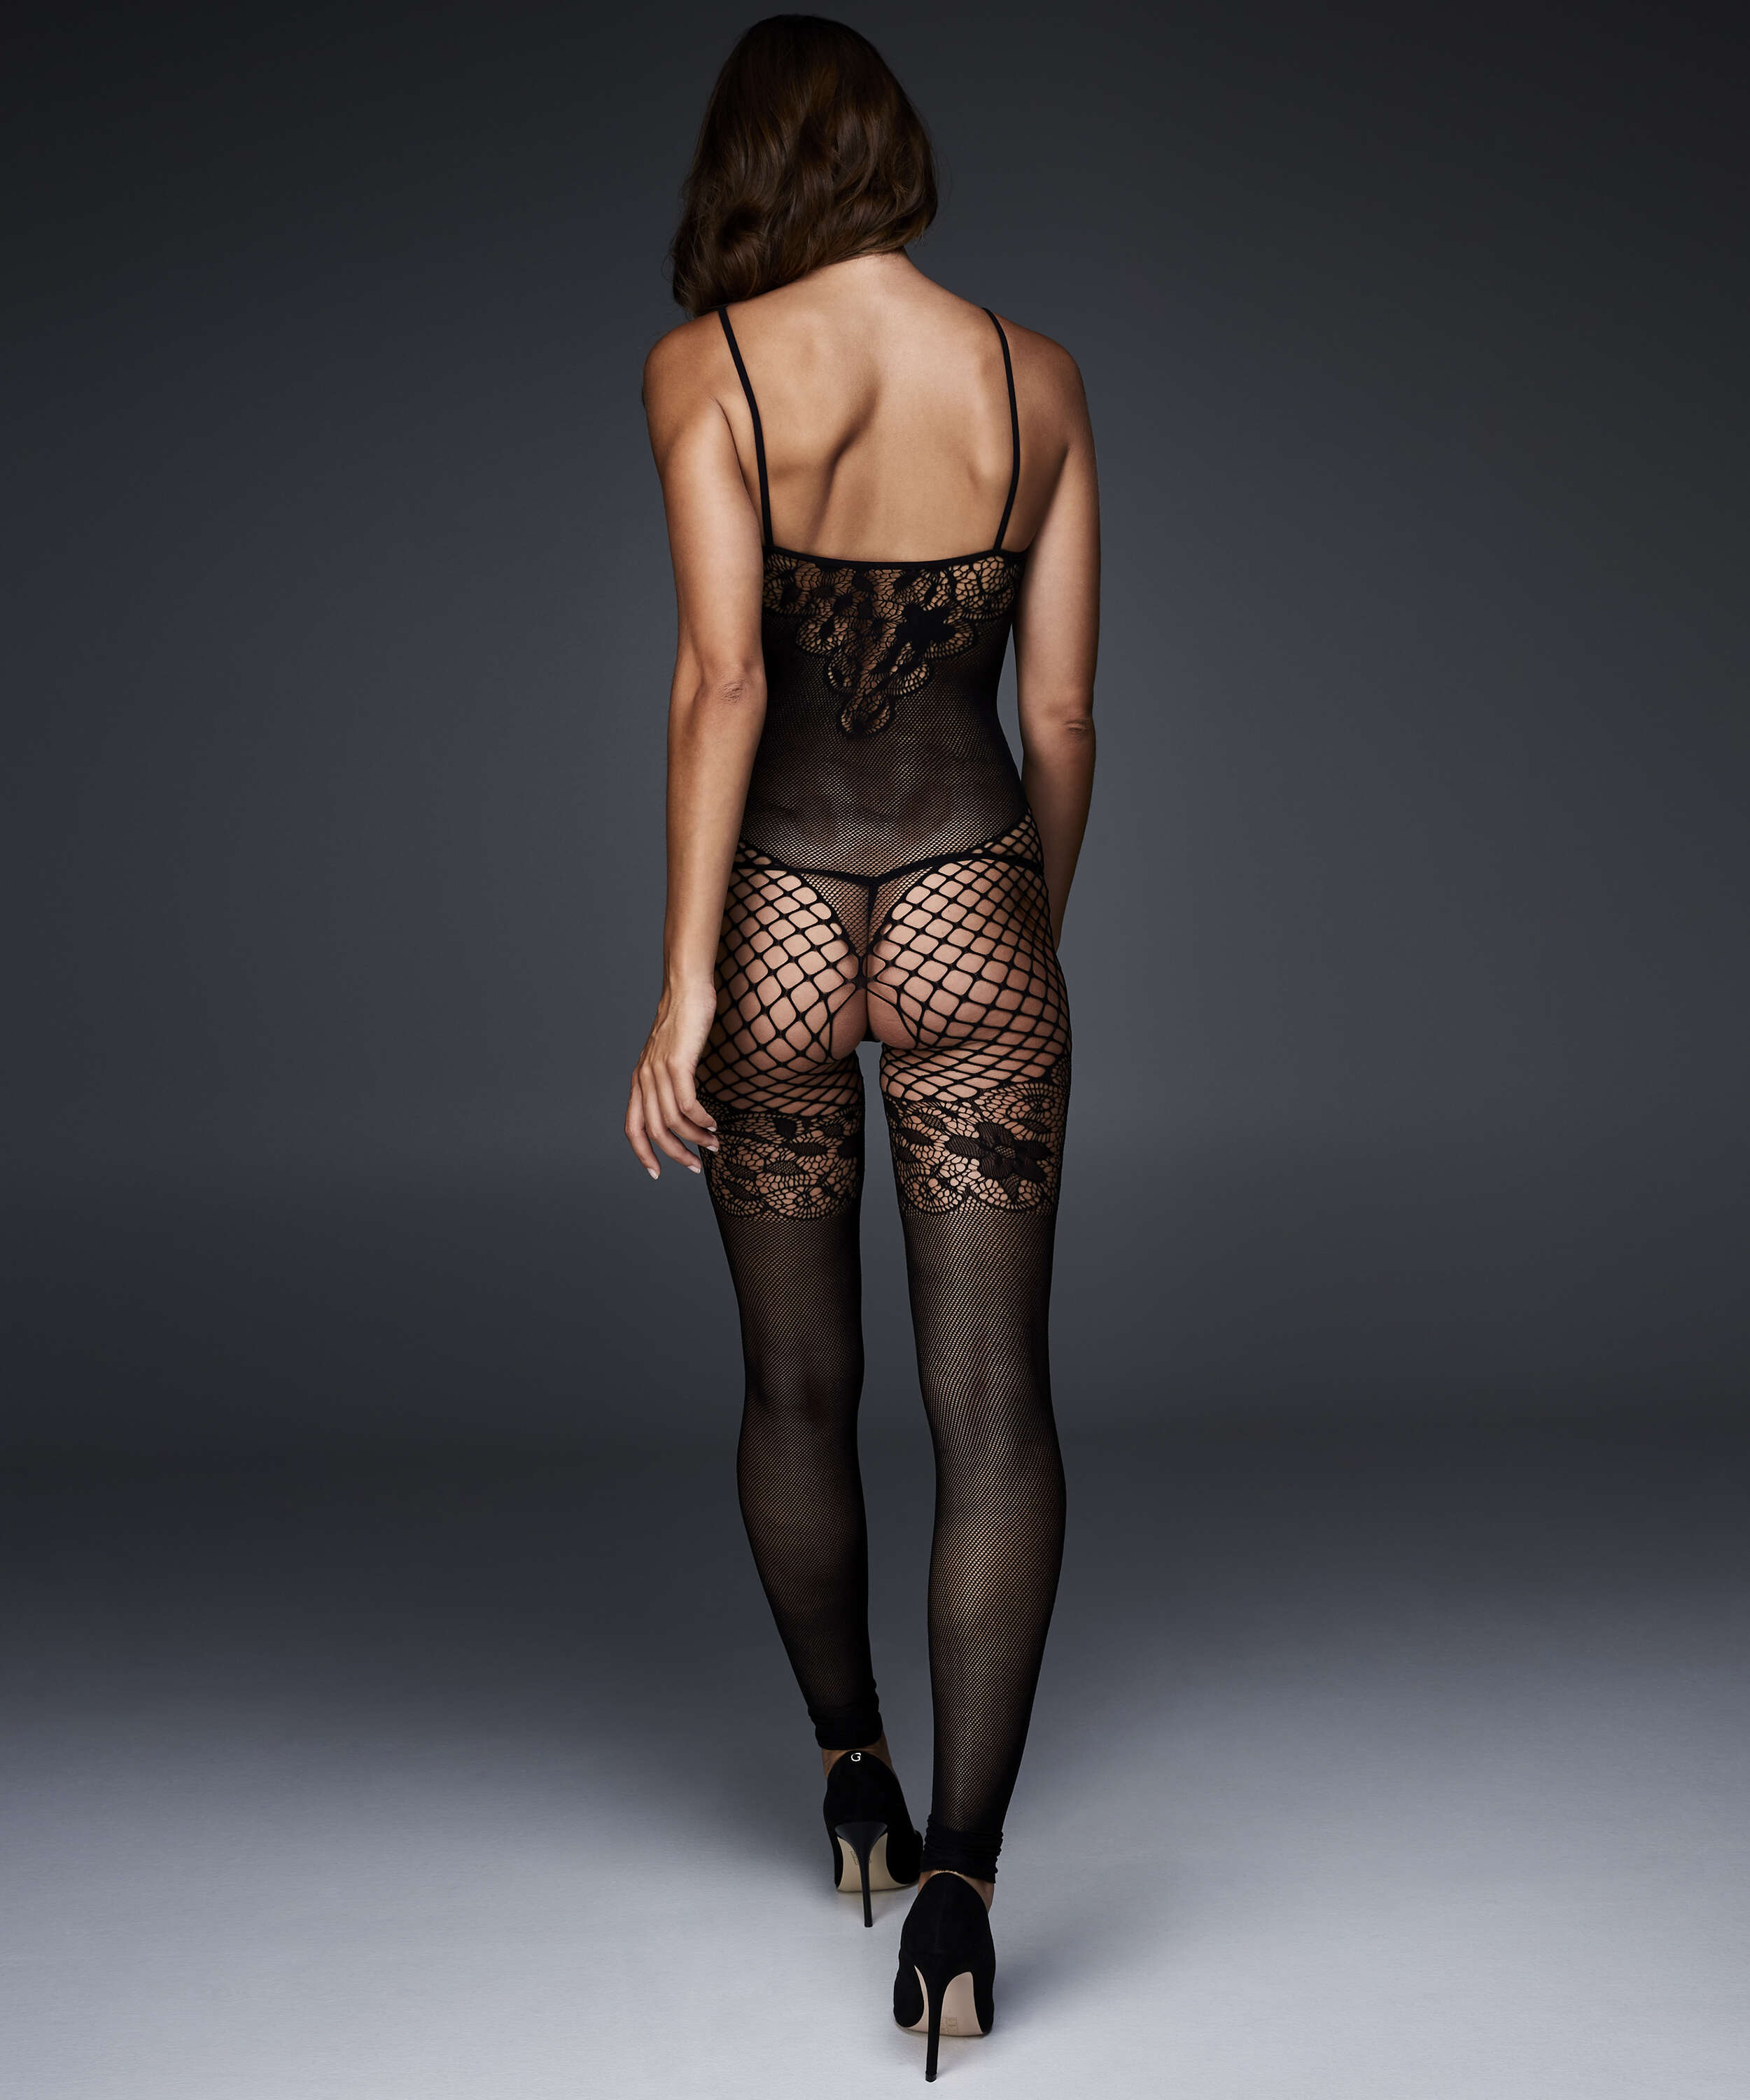 Fishnet Lace Mix Catsuit with open crotch, Black, main